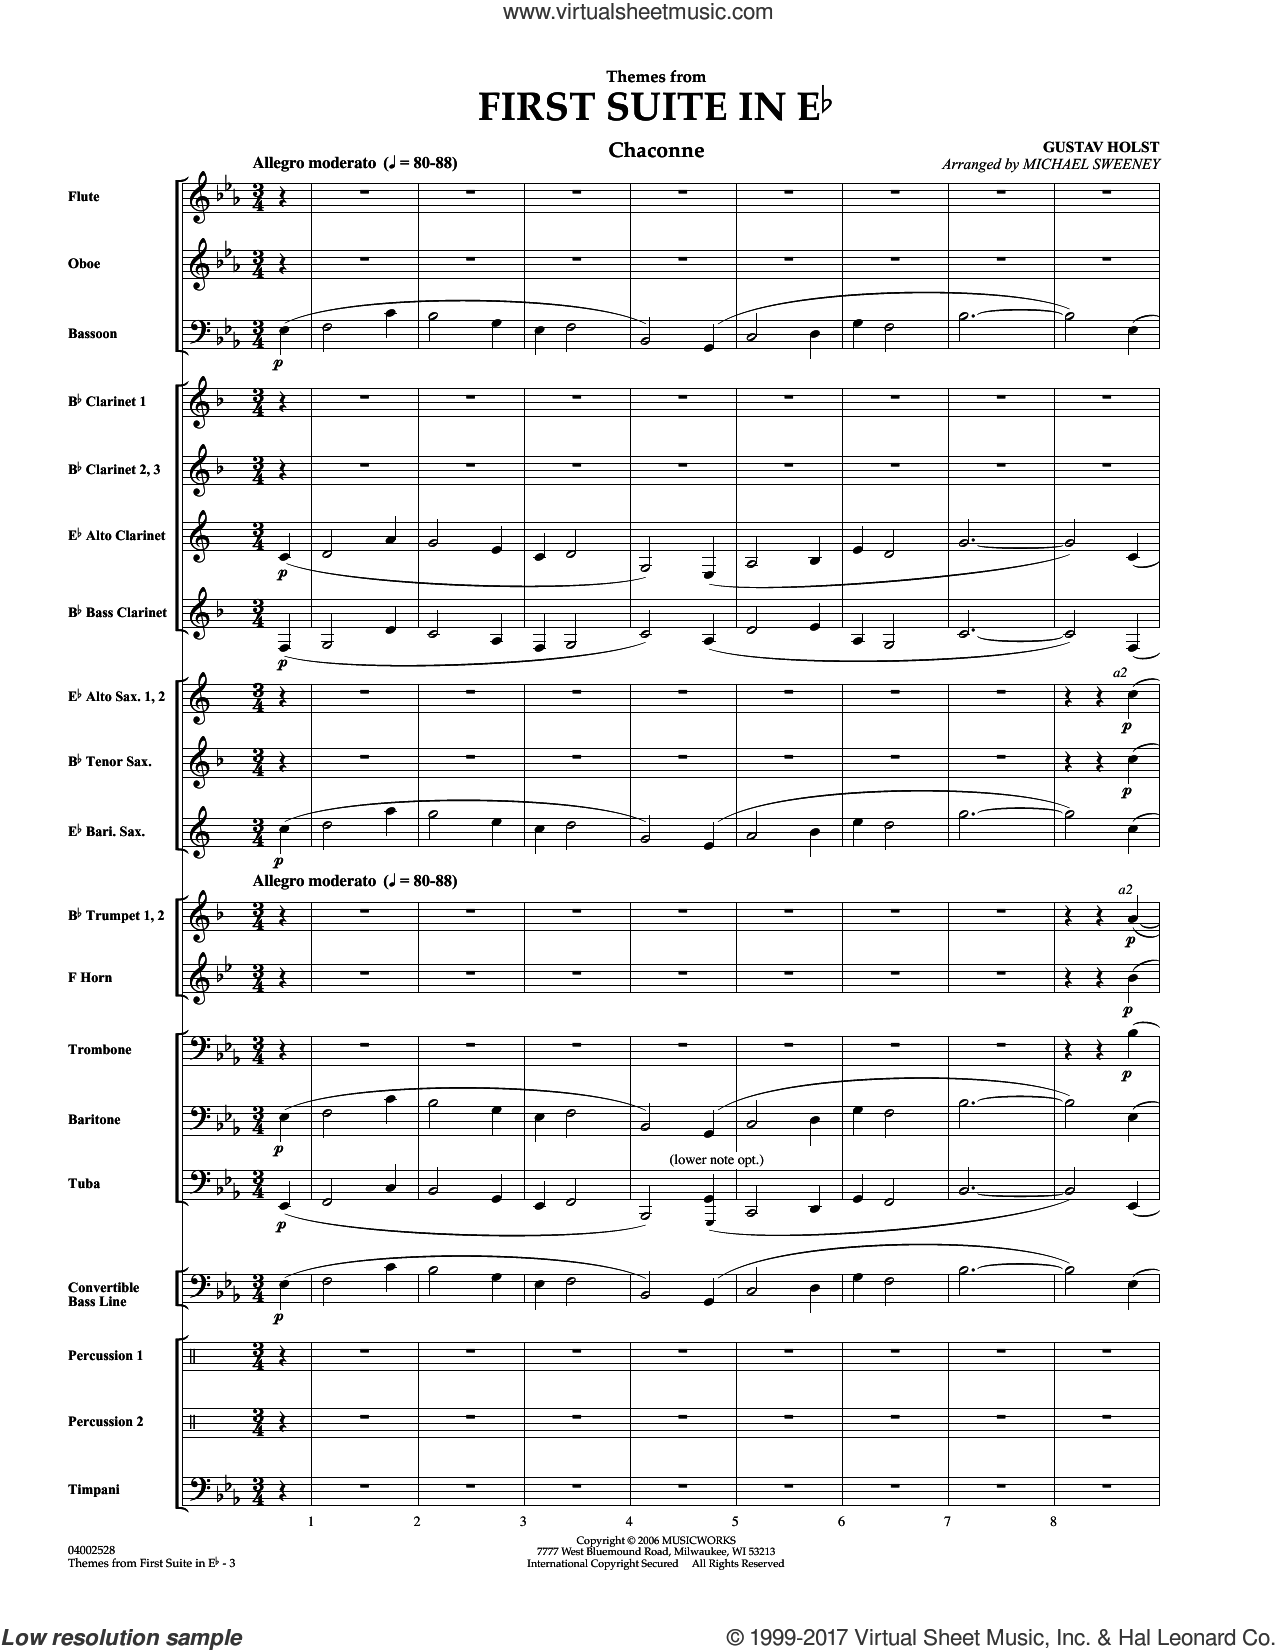 First Suite In E Flat, Themes From (COMPLETE) sheet music for concert band by Michael Sweeney and Gustav Holst, classical score, intermediate skill level